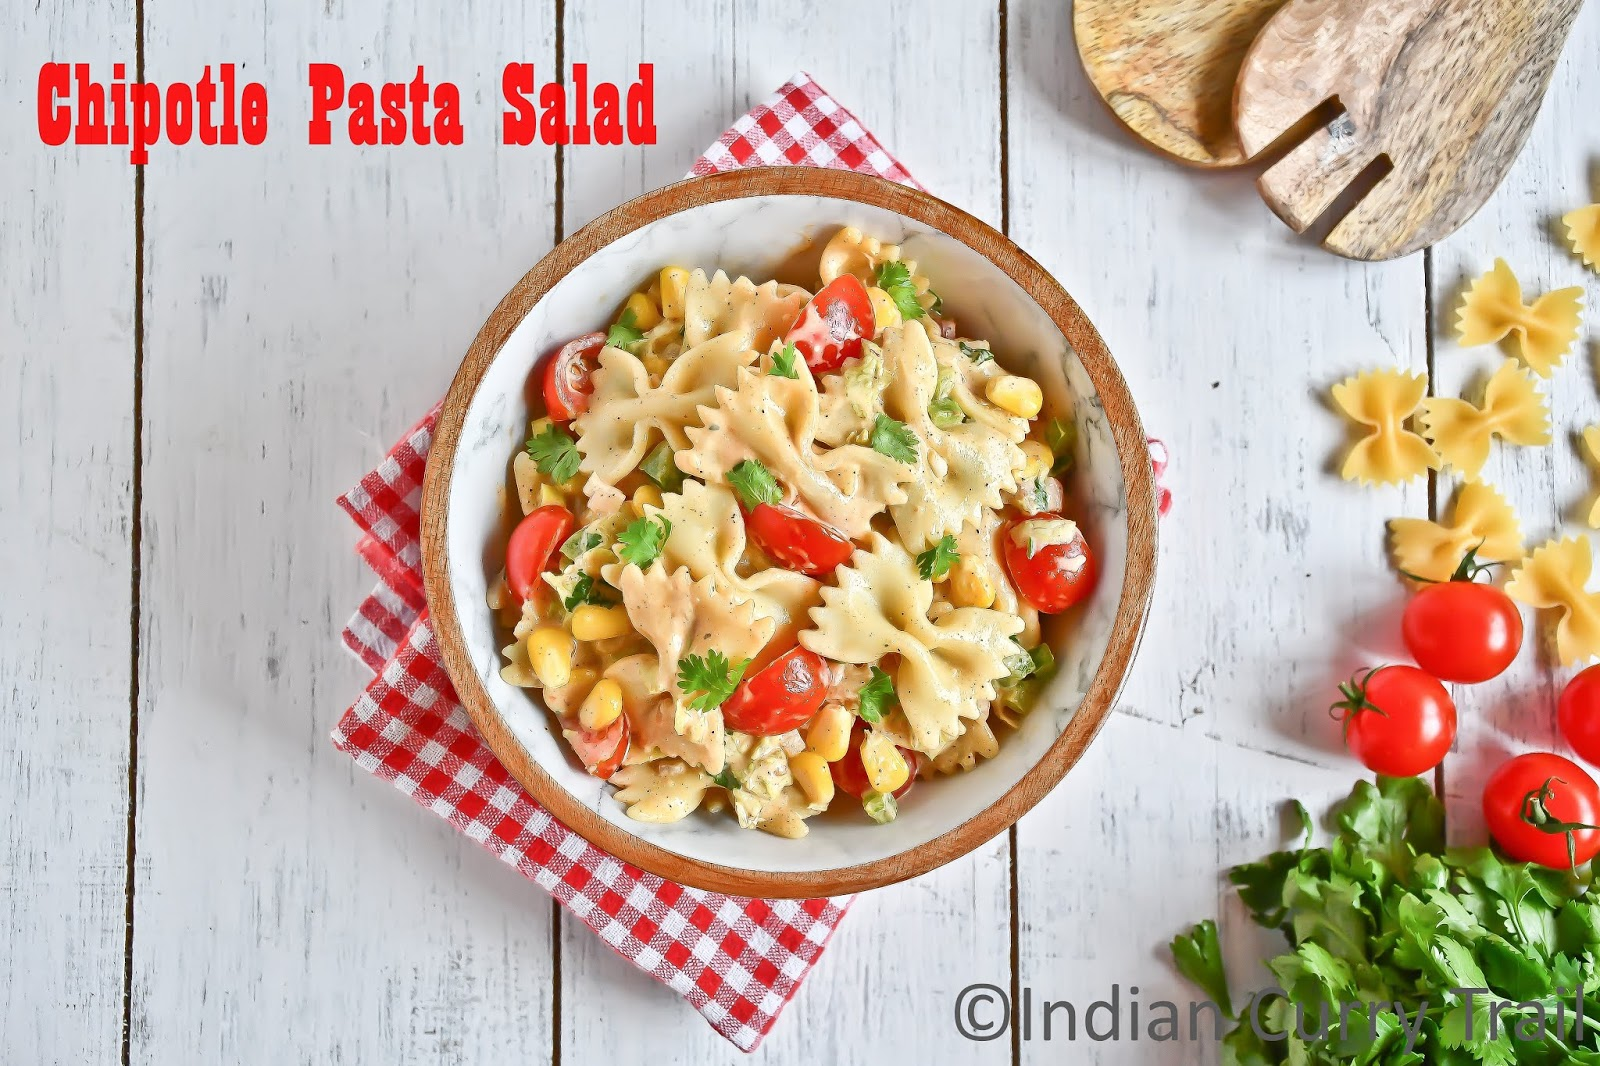 chipotle-pasta-salad-3